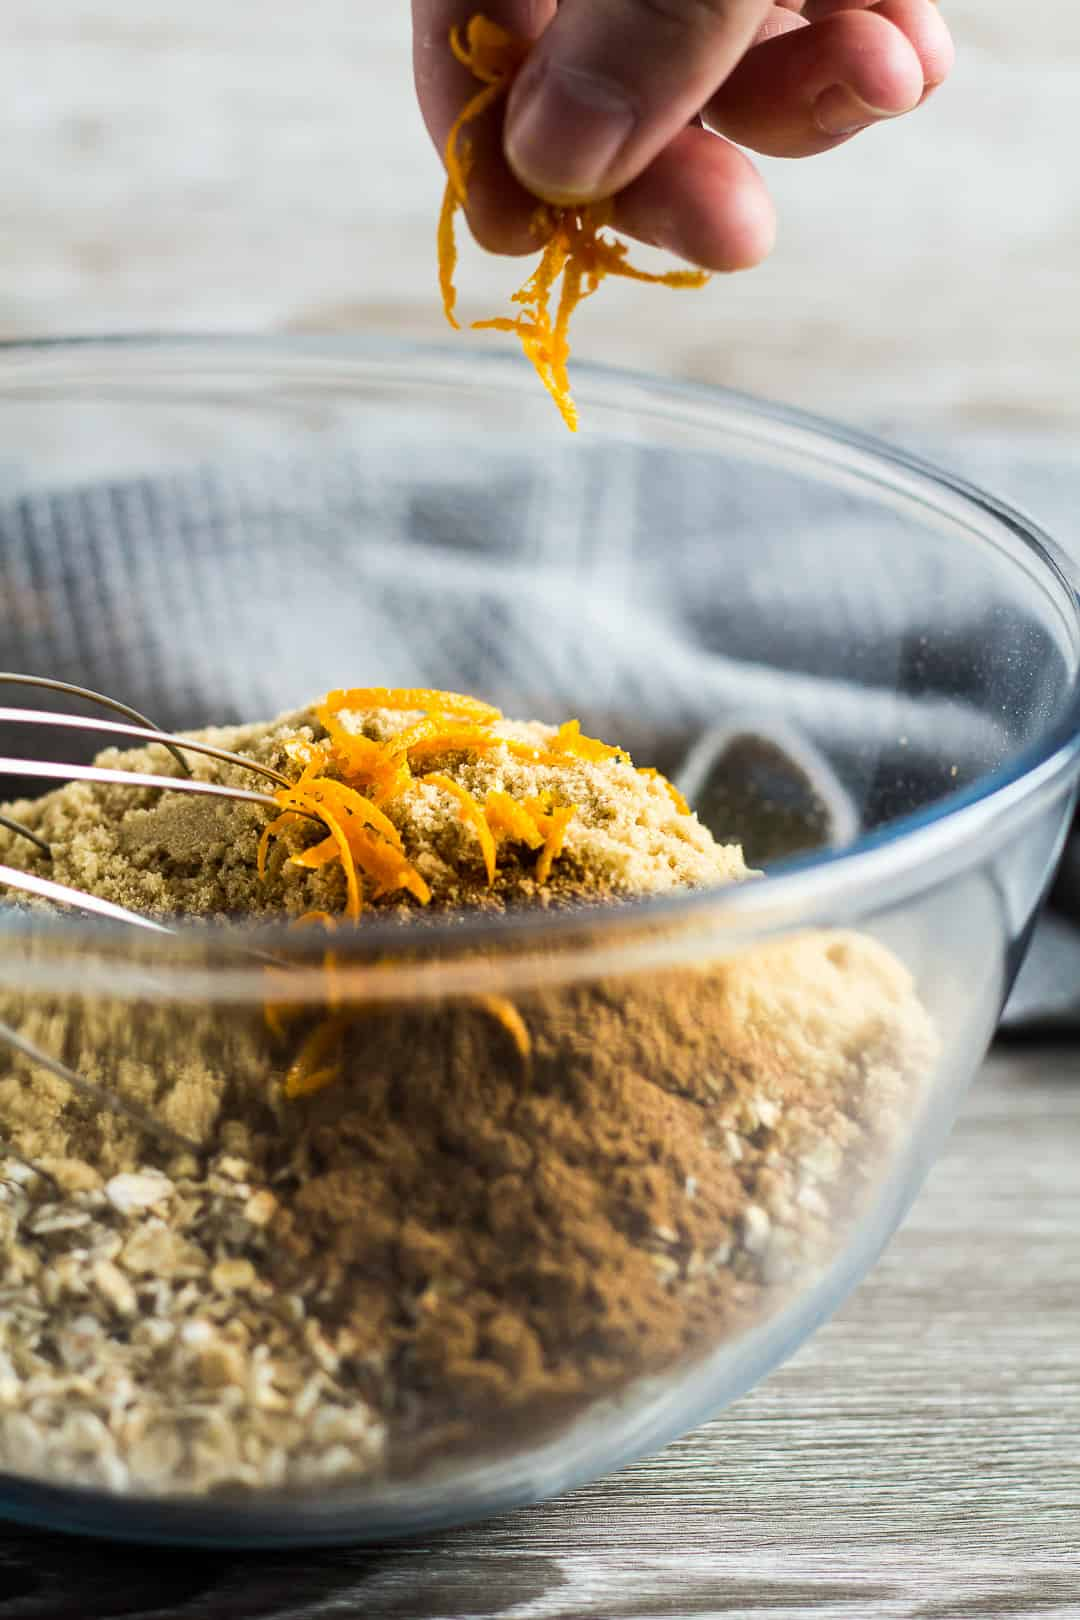 Orange zest being added to a glass mixing bowl full of ingredients for Hot Cross Bun Spiced Flapjacks.